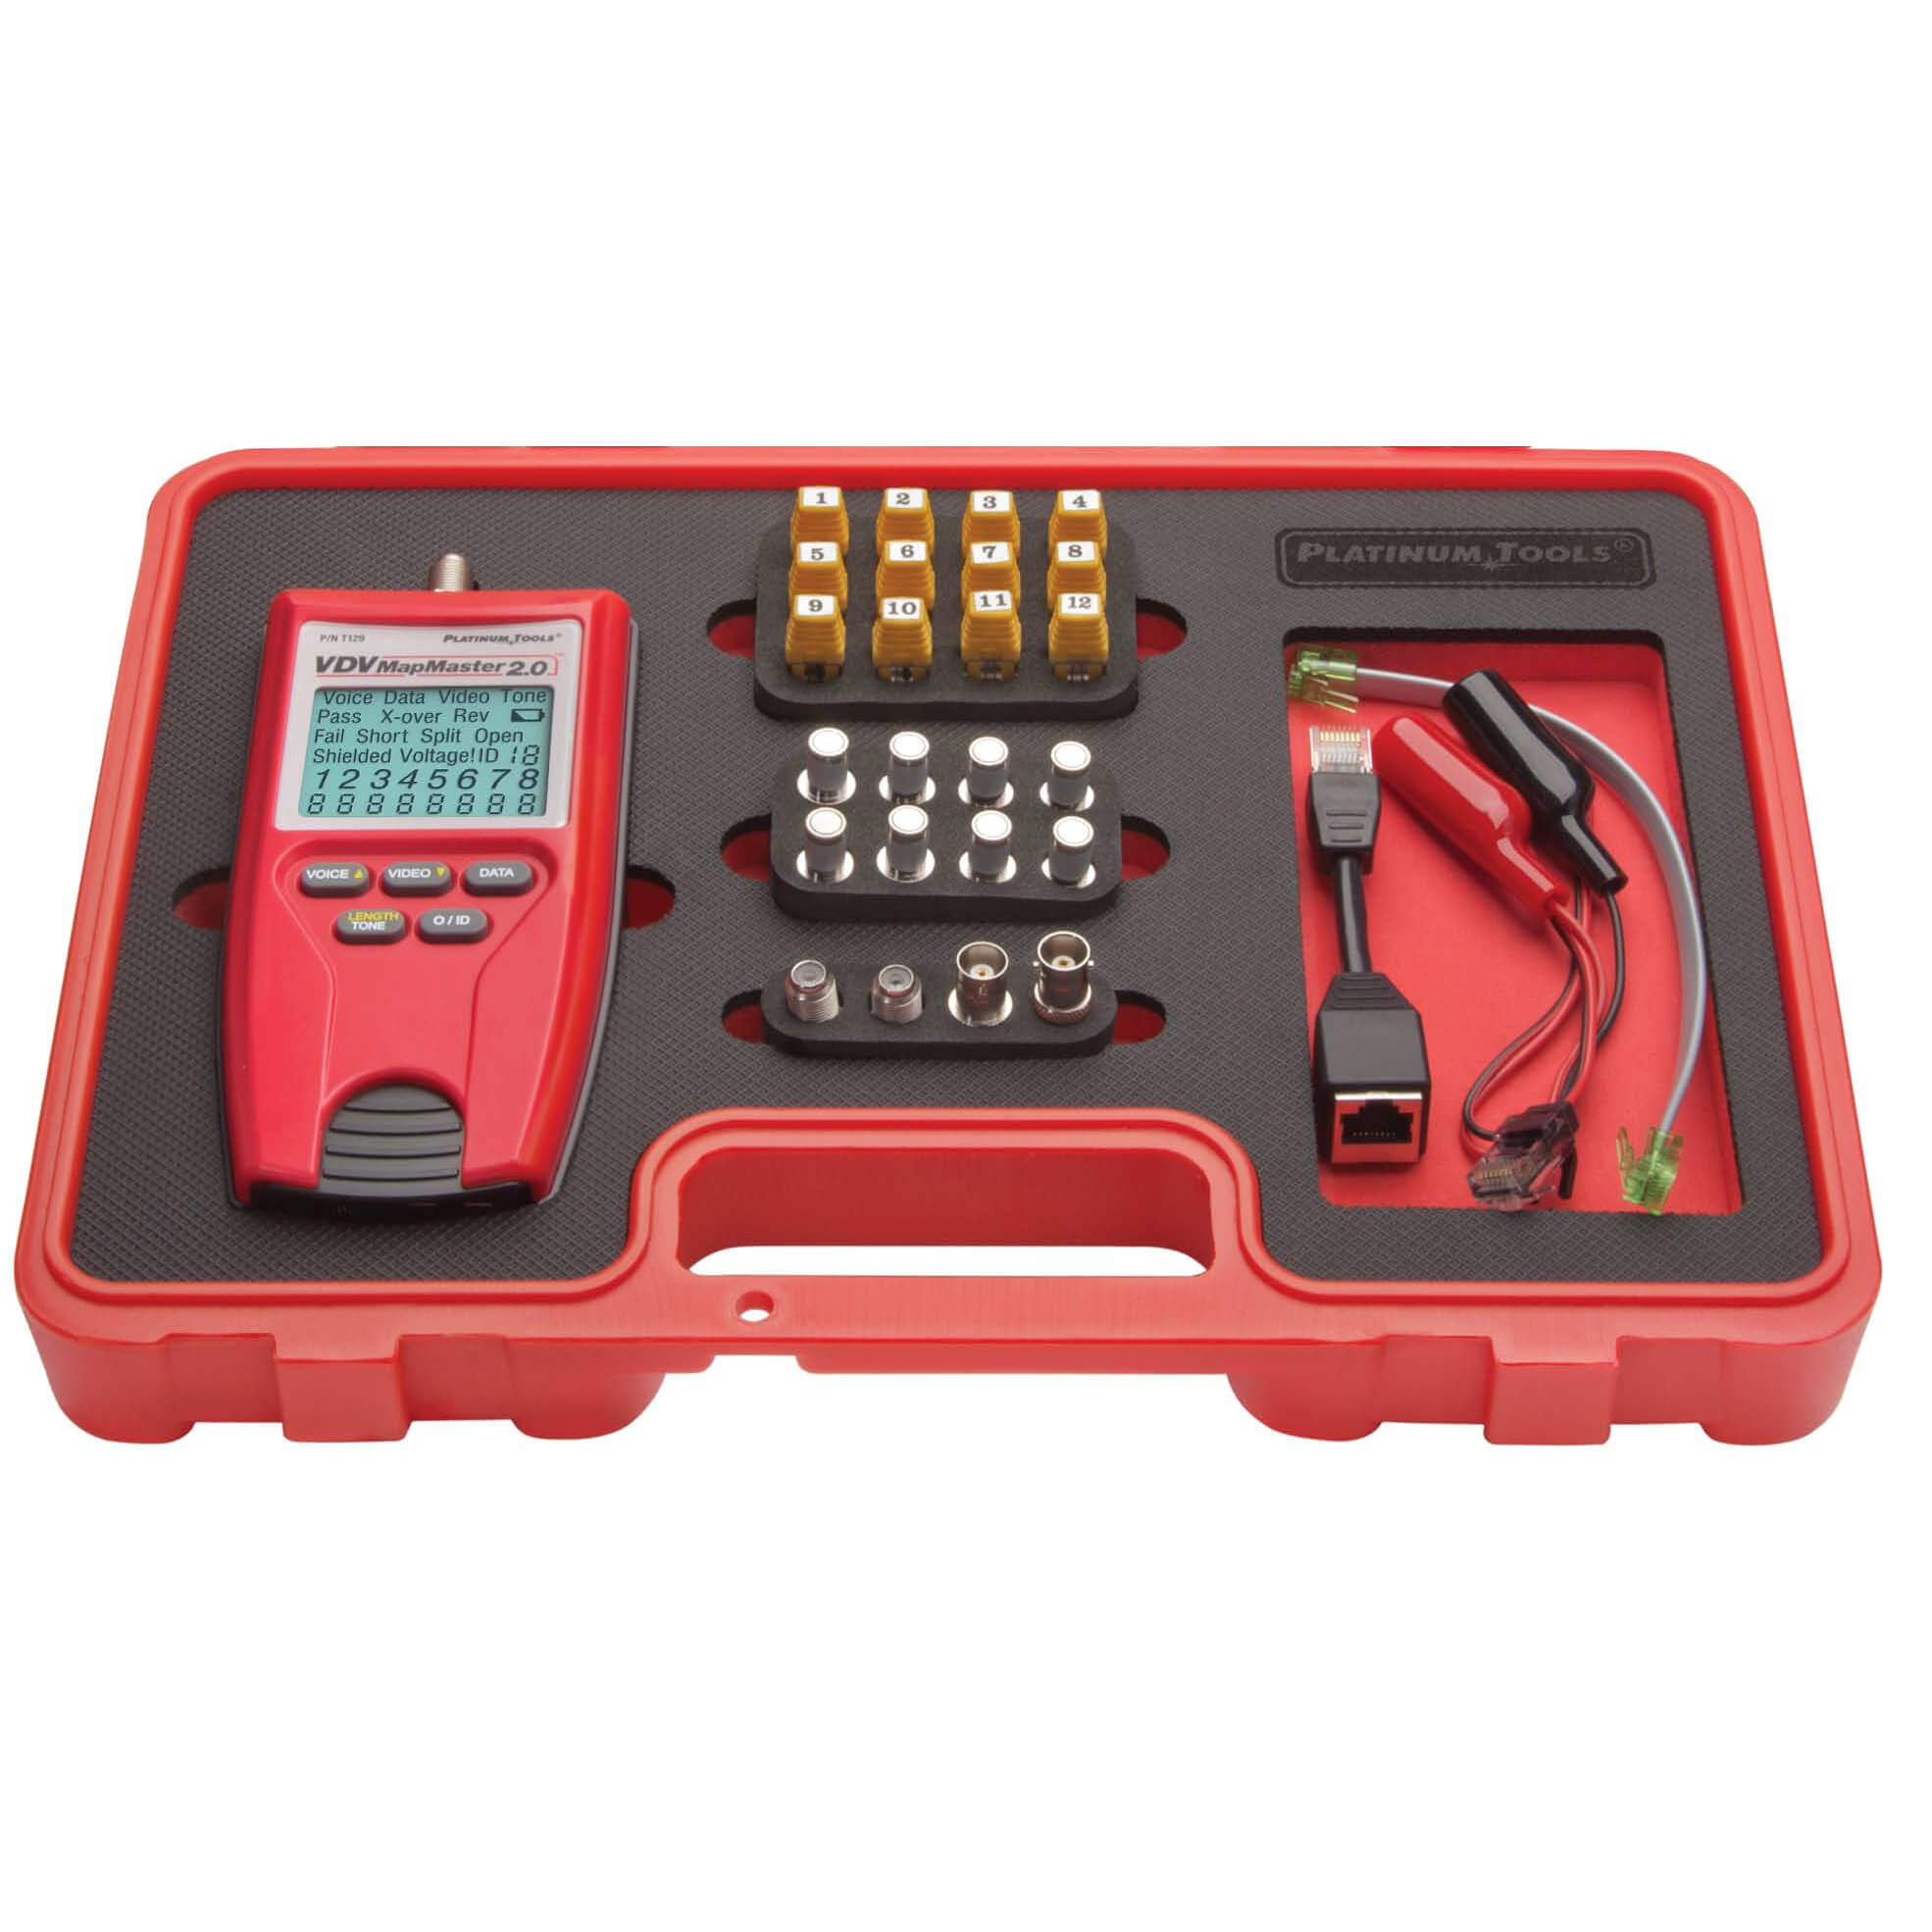 Platinum Tools T129K1 VDV MapMaster 2.0 Kit Network Cable Tester and Mapper